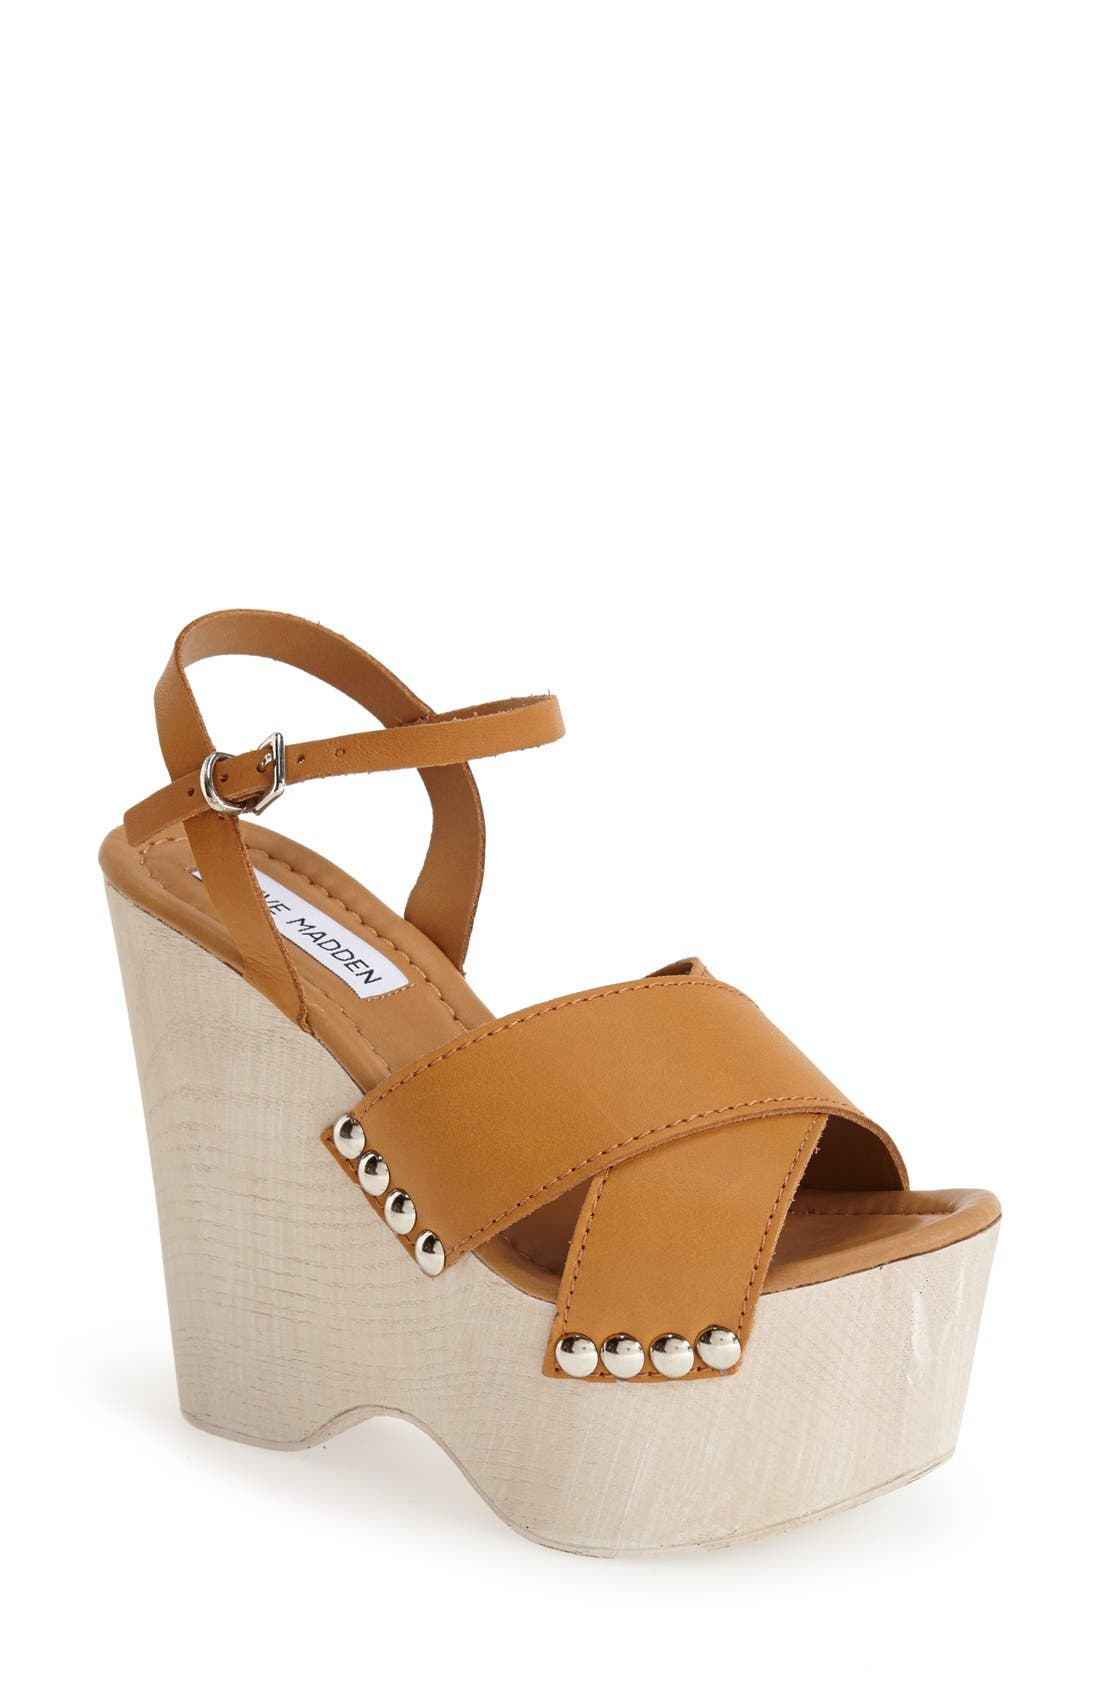 Alternate Image 1 Selected - Steve Madden 'Lylia' Wedge Sandal (Women)